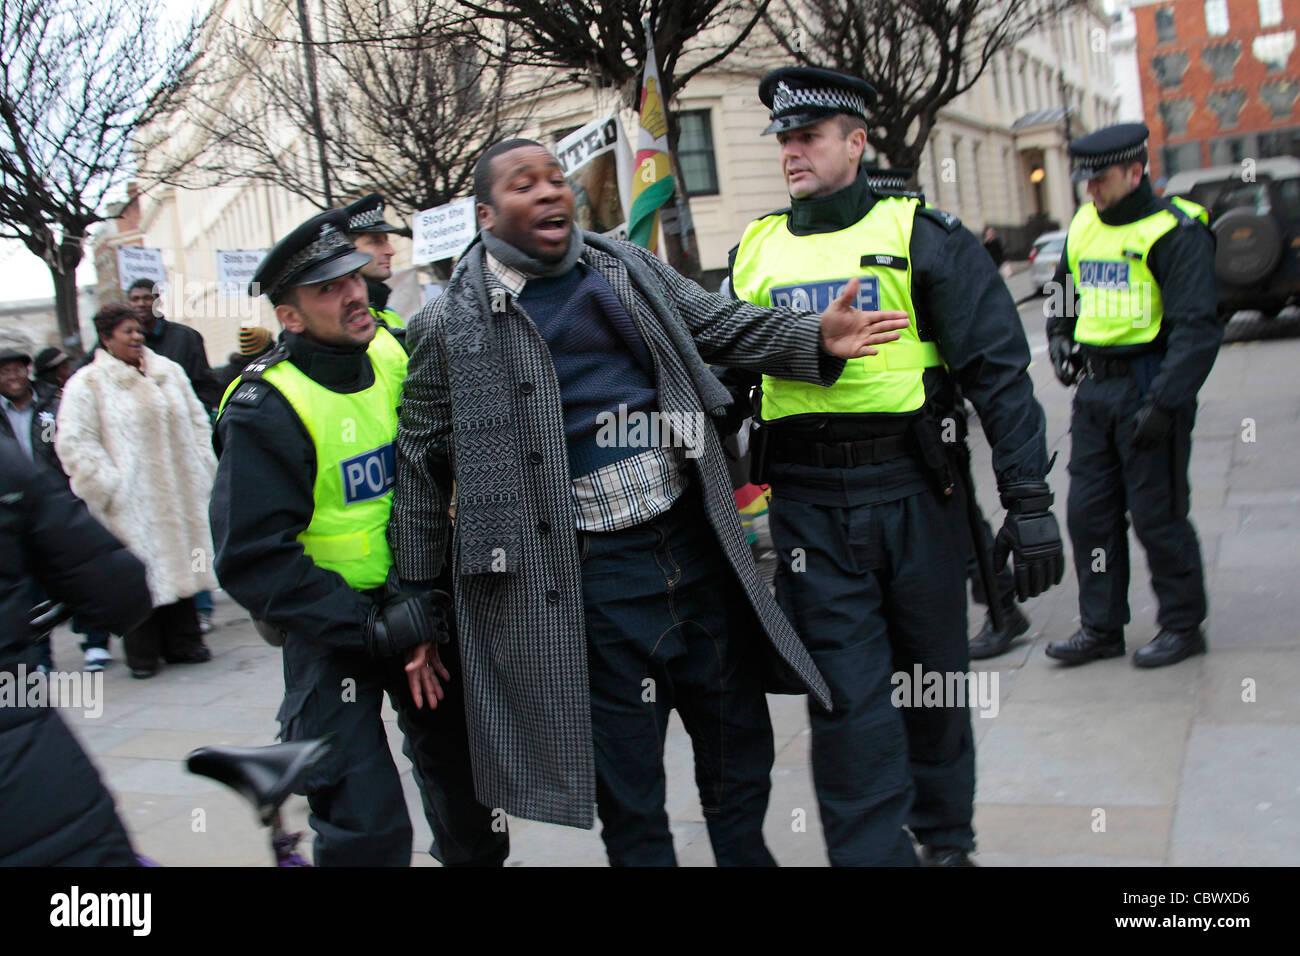 Police tackle Congolese protester - Stock Image